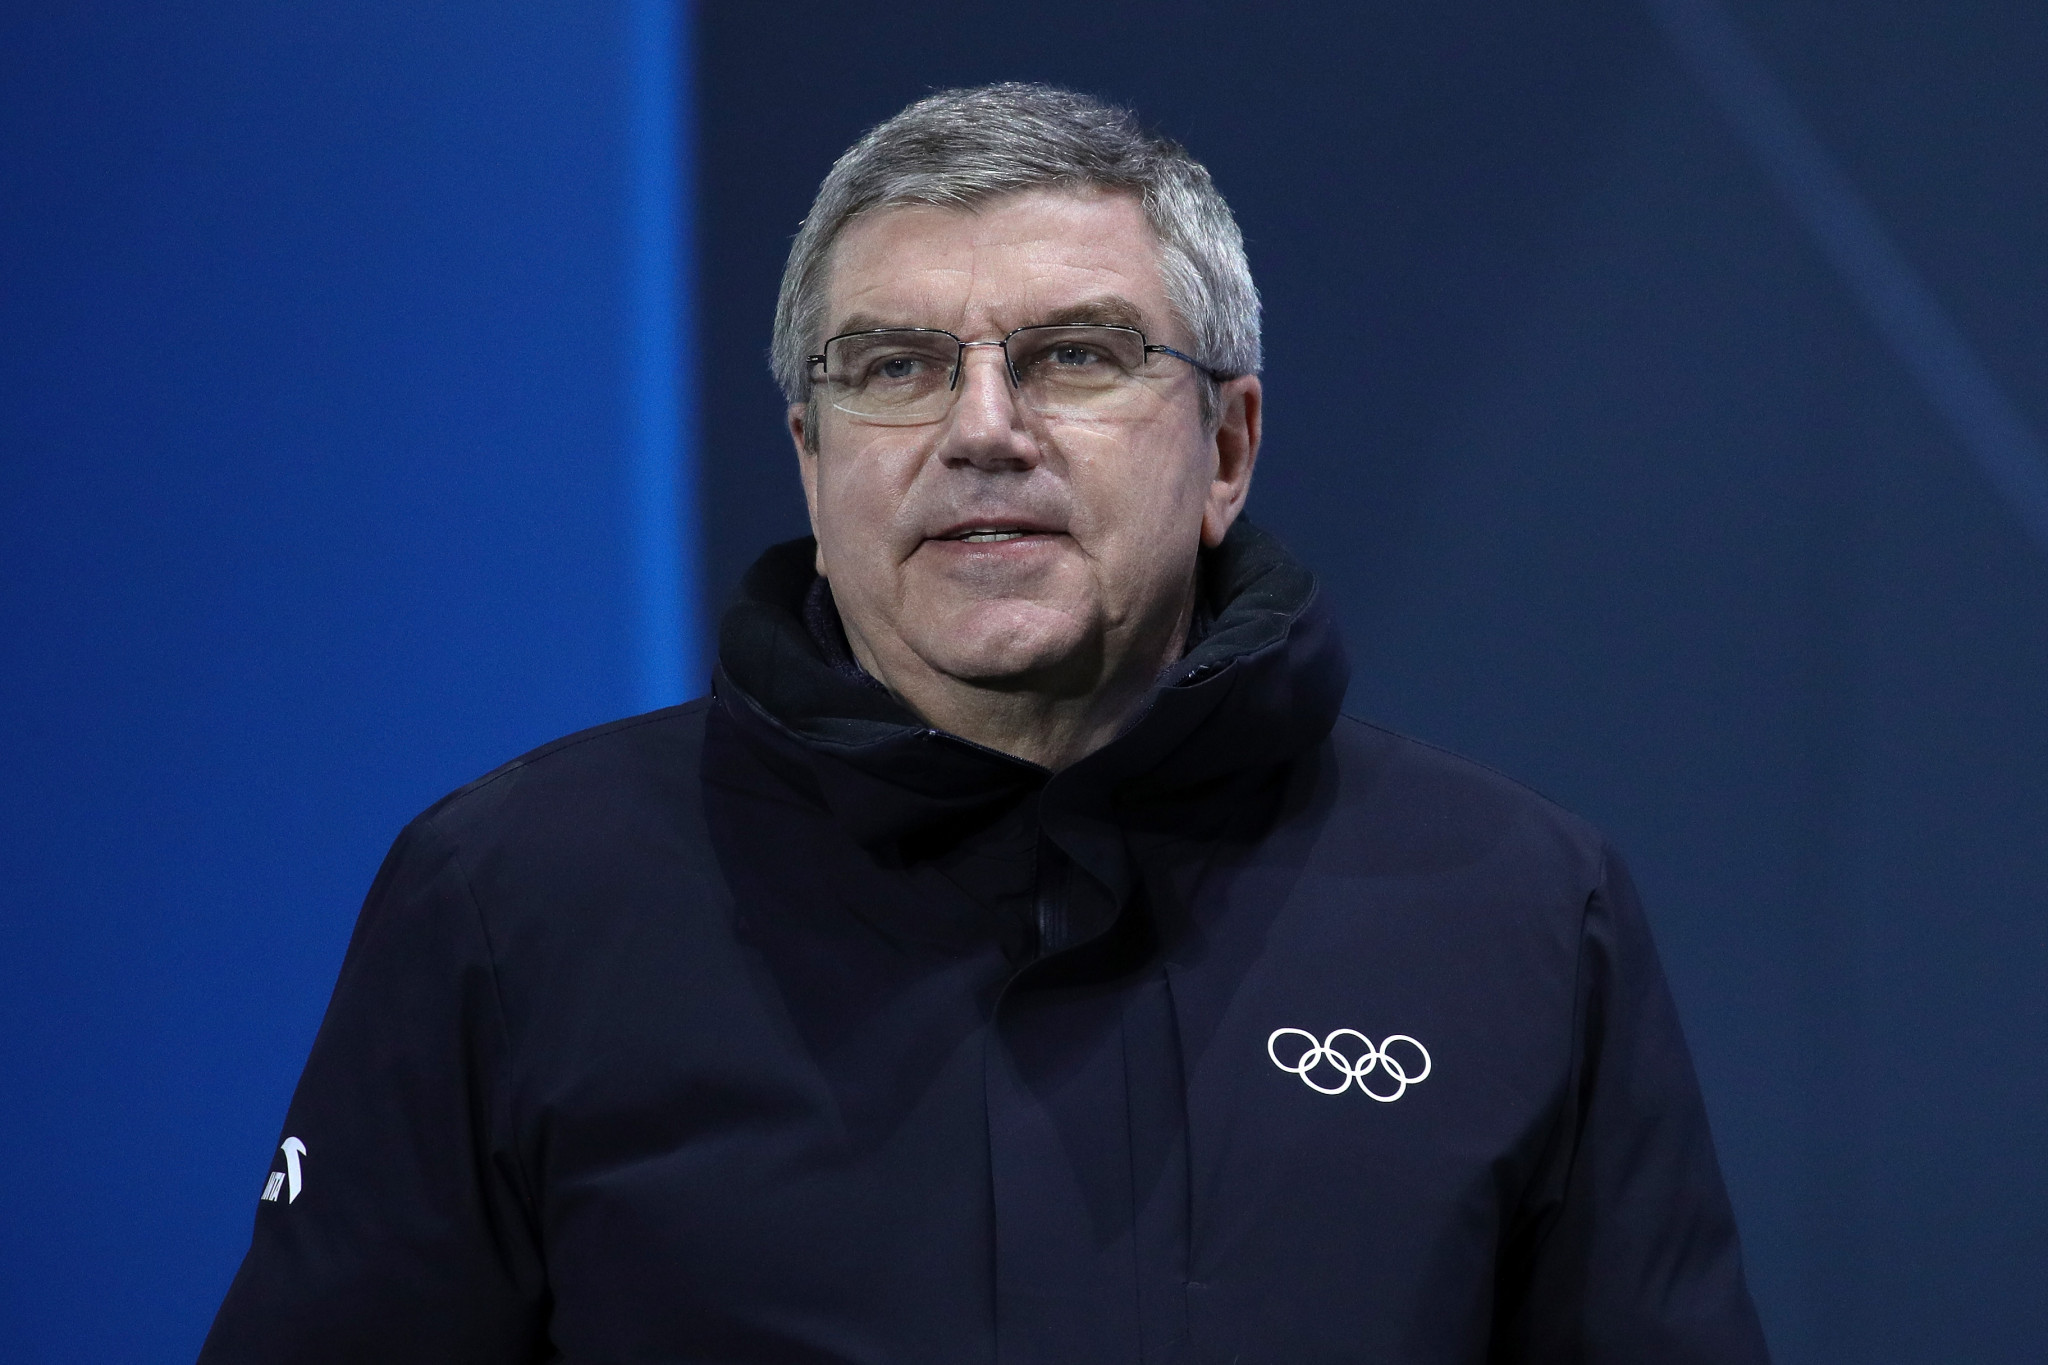 IOC President Thomas Bach chaired the Executive Board meeting today ©Getty Images